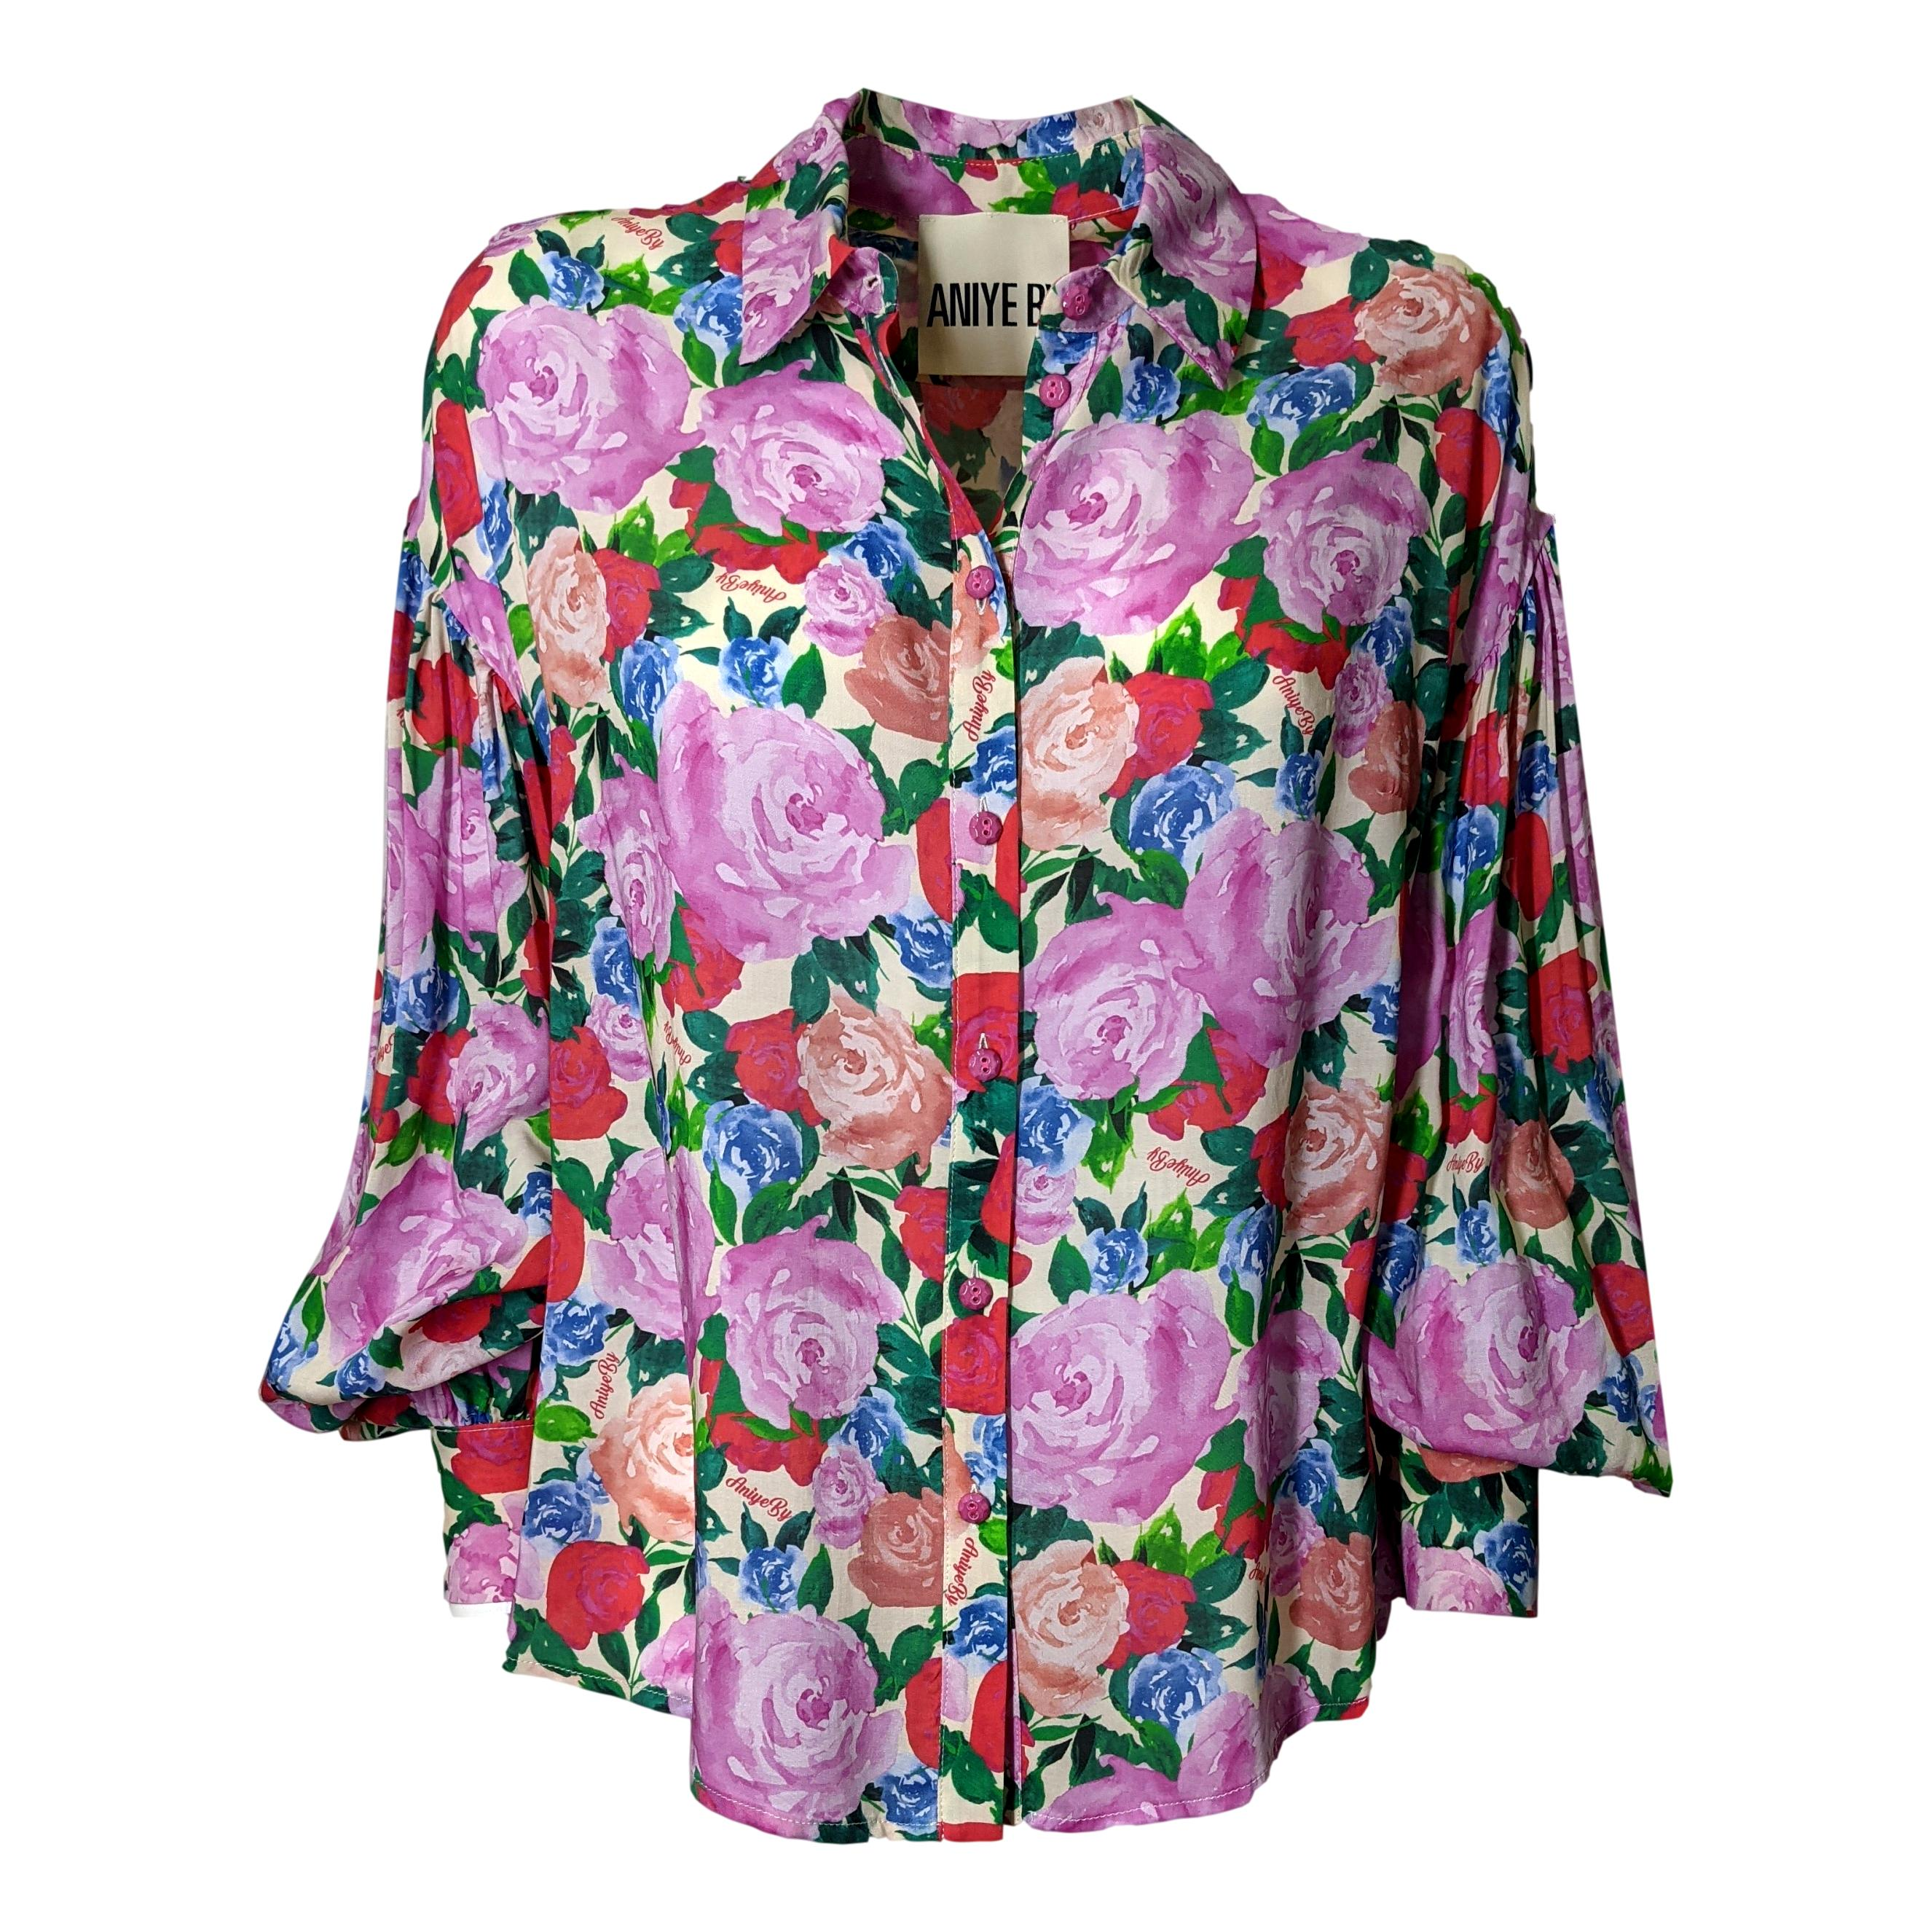 isabel camicia ANIYE BY | Camicia | 18576500960